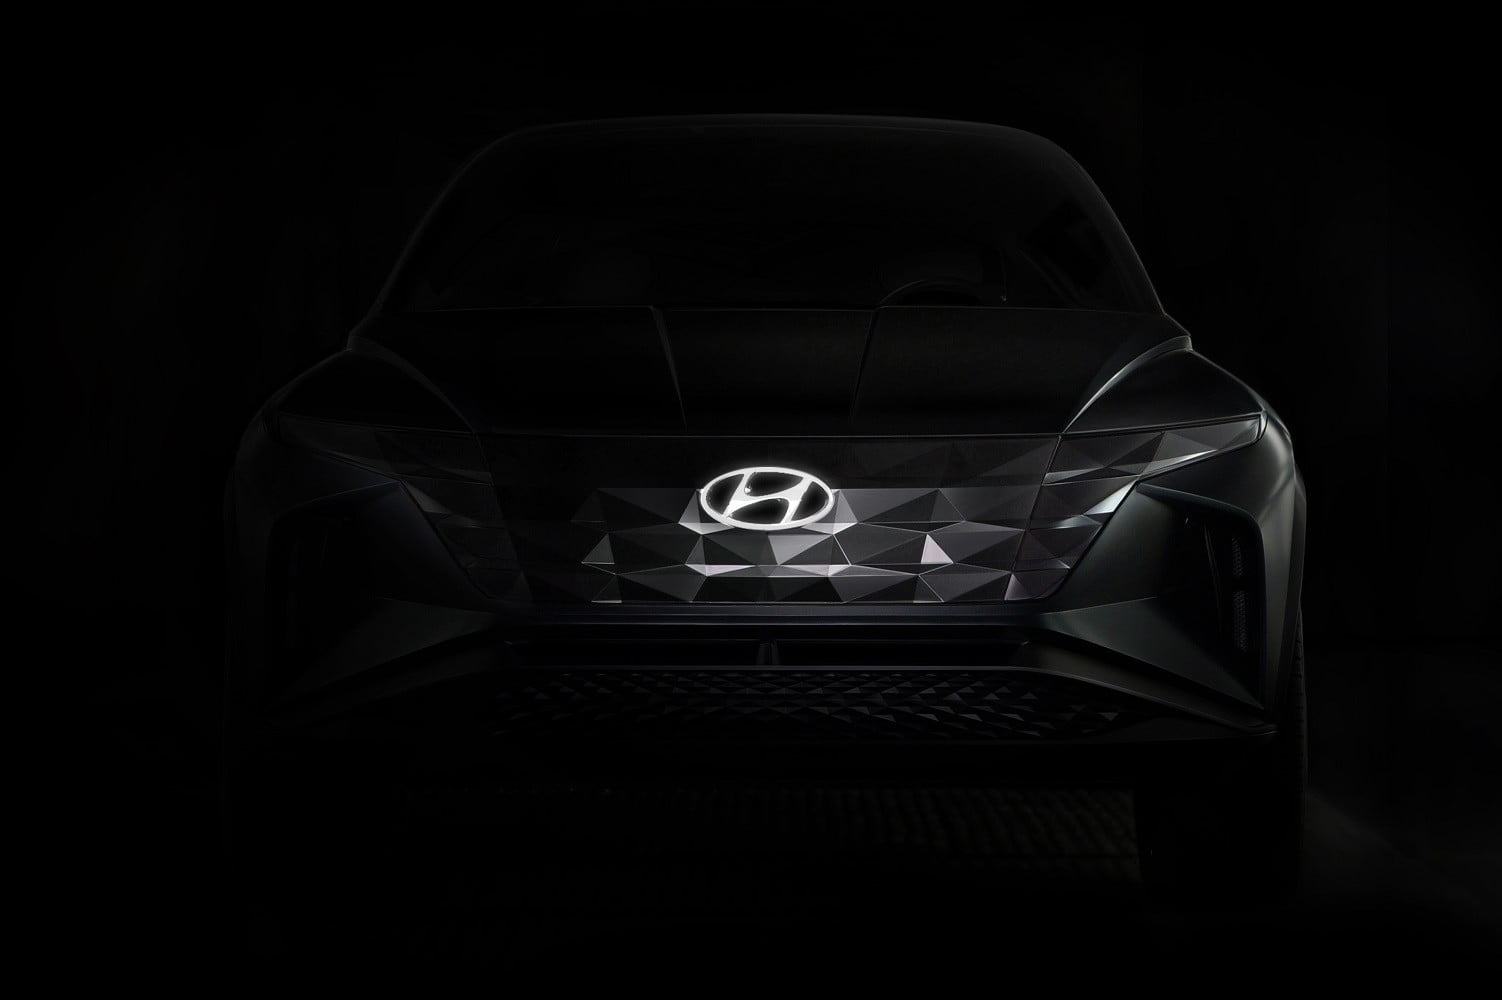 Stylish and compact, Hyundai's next concept is tailor-made for Los Angeles